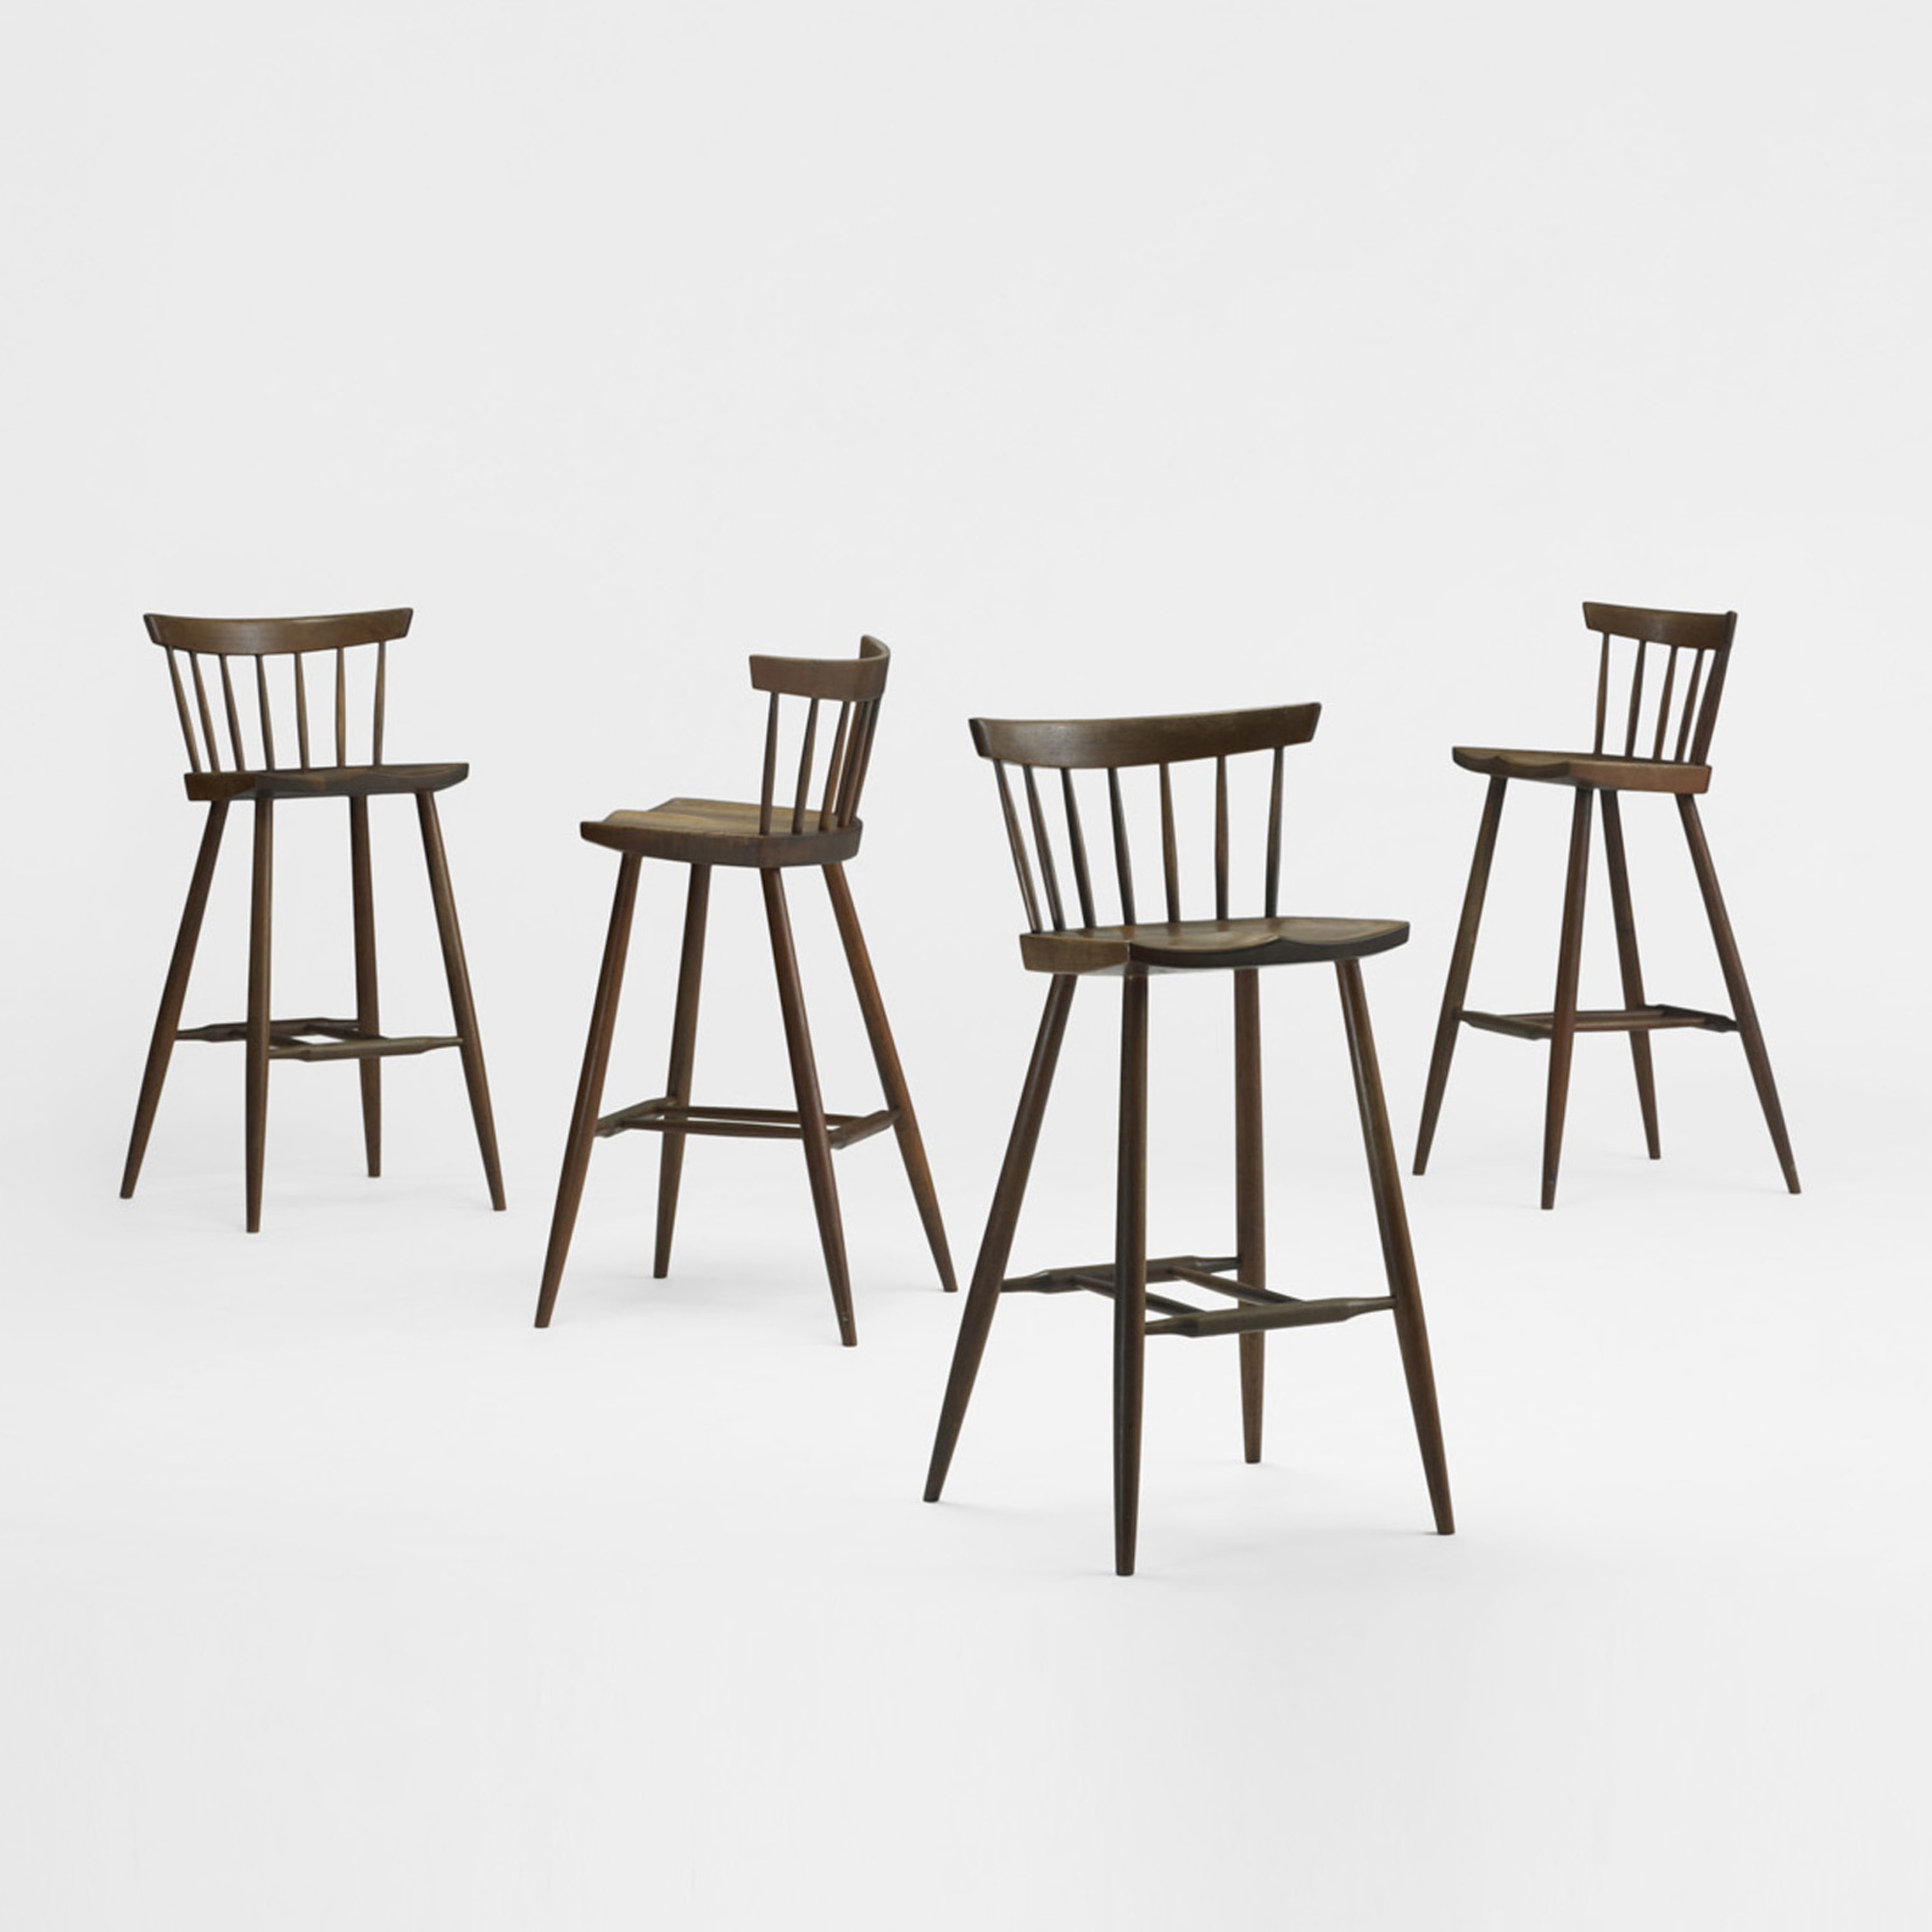 212: George Nakashima / Four Legged High Chairs, Set Of Four (1